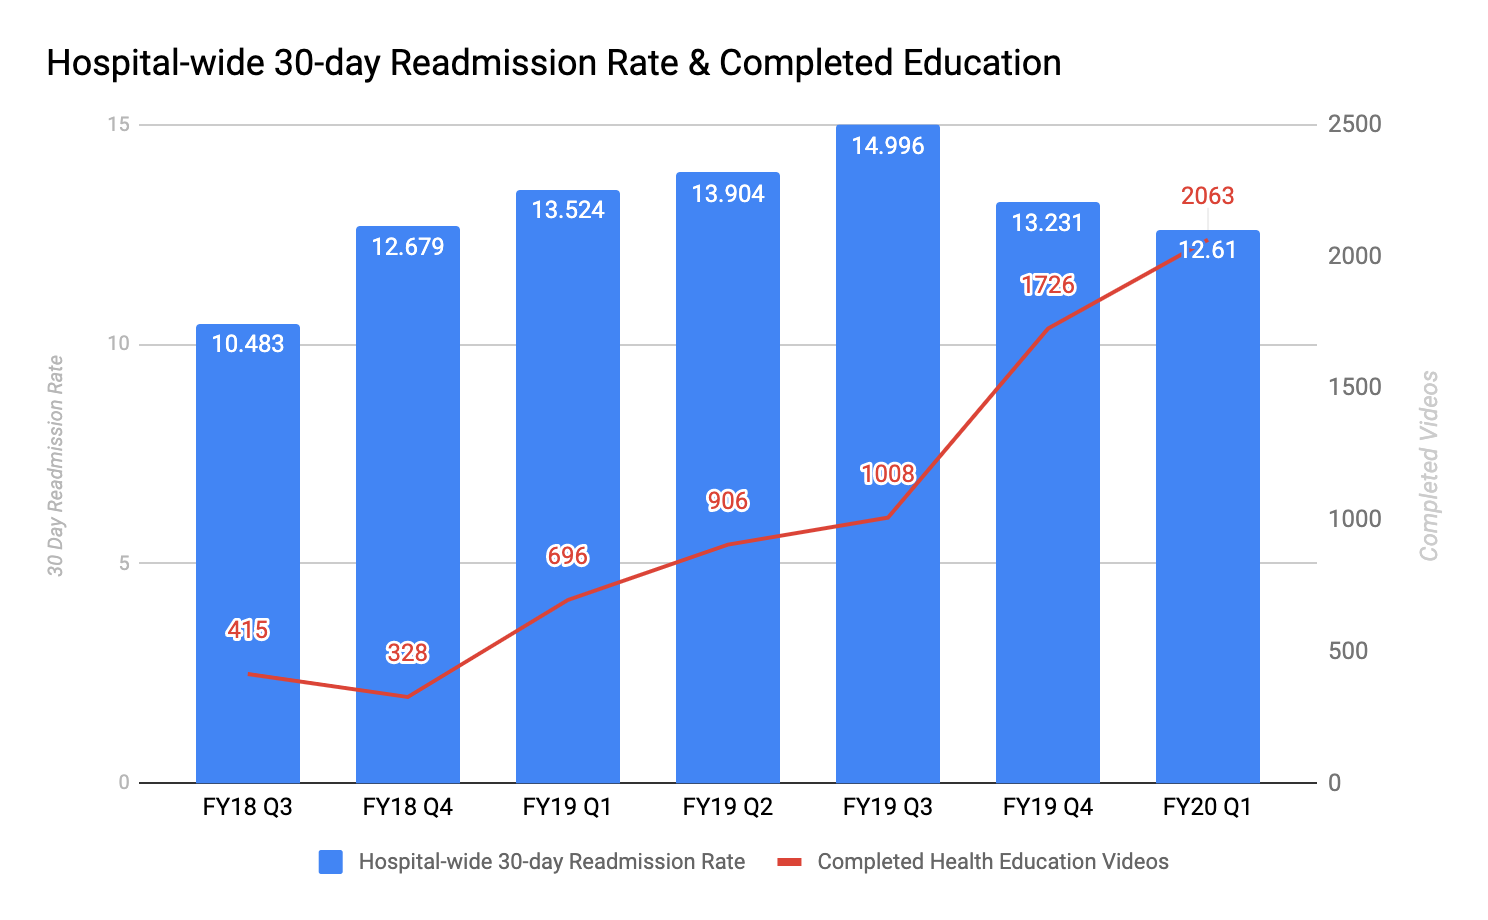 Hospital-wide 30-day Readmission Rate & Completed Education